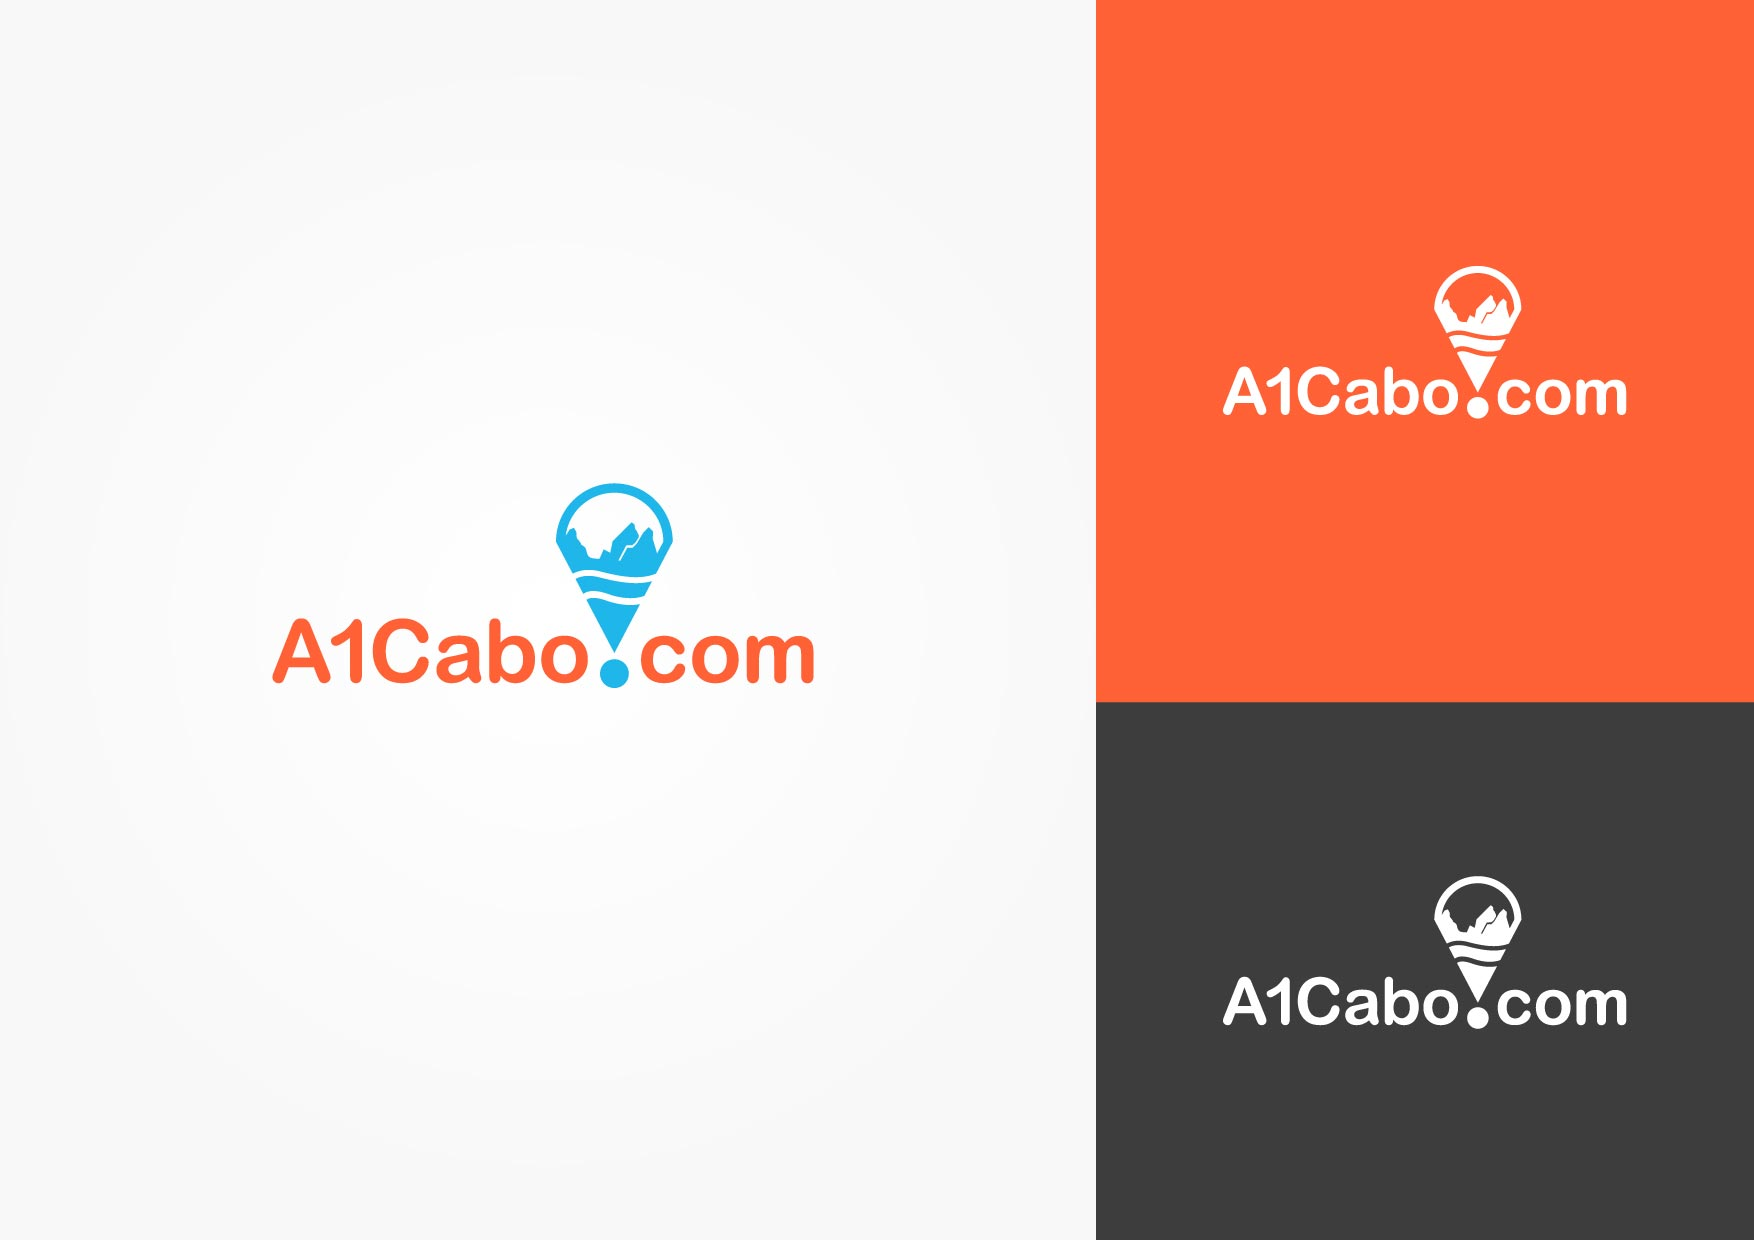 Logo Design by Osi Indra - Entry No. 32 in the Logo Design Contest Inspiring Logo Design for A1Cabo.com.